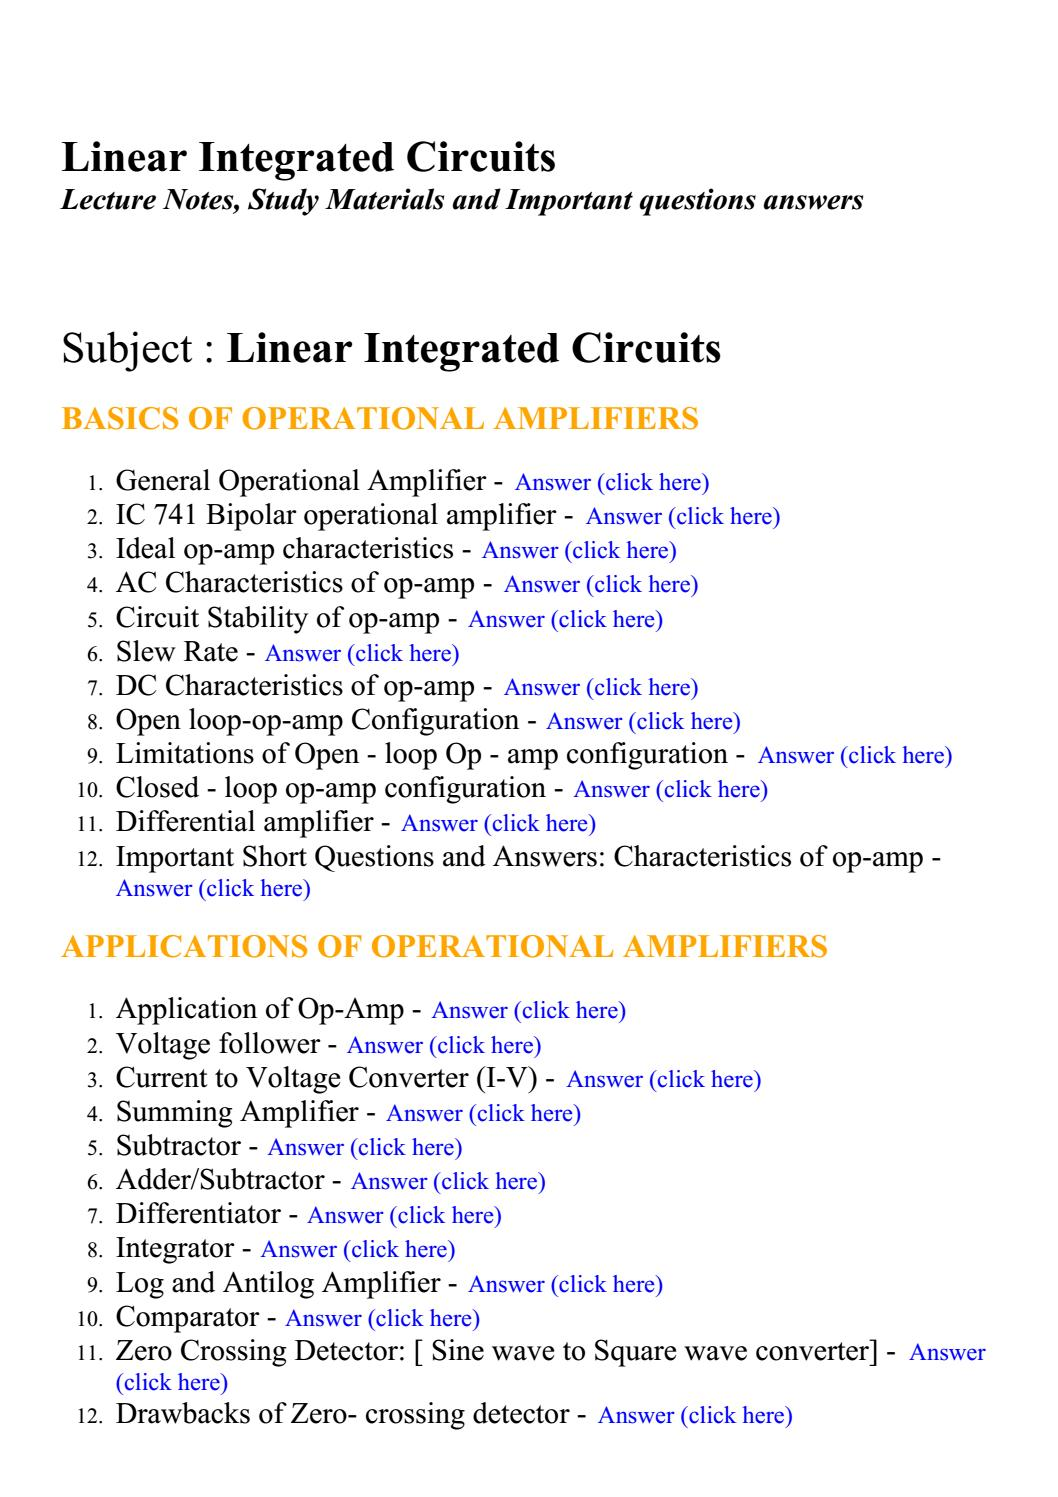 Linear Integrated Circuits Lecture Notes Study Materials And Summing Amplifier Inverting Adder Circuit Using Op Amp 741 Pictures Important Questions Answers By Brainkart Com Issuu